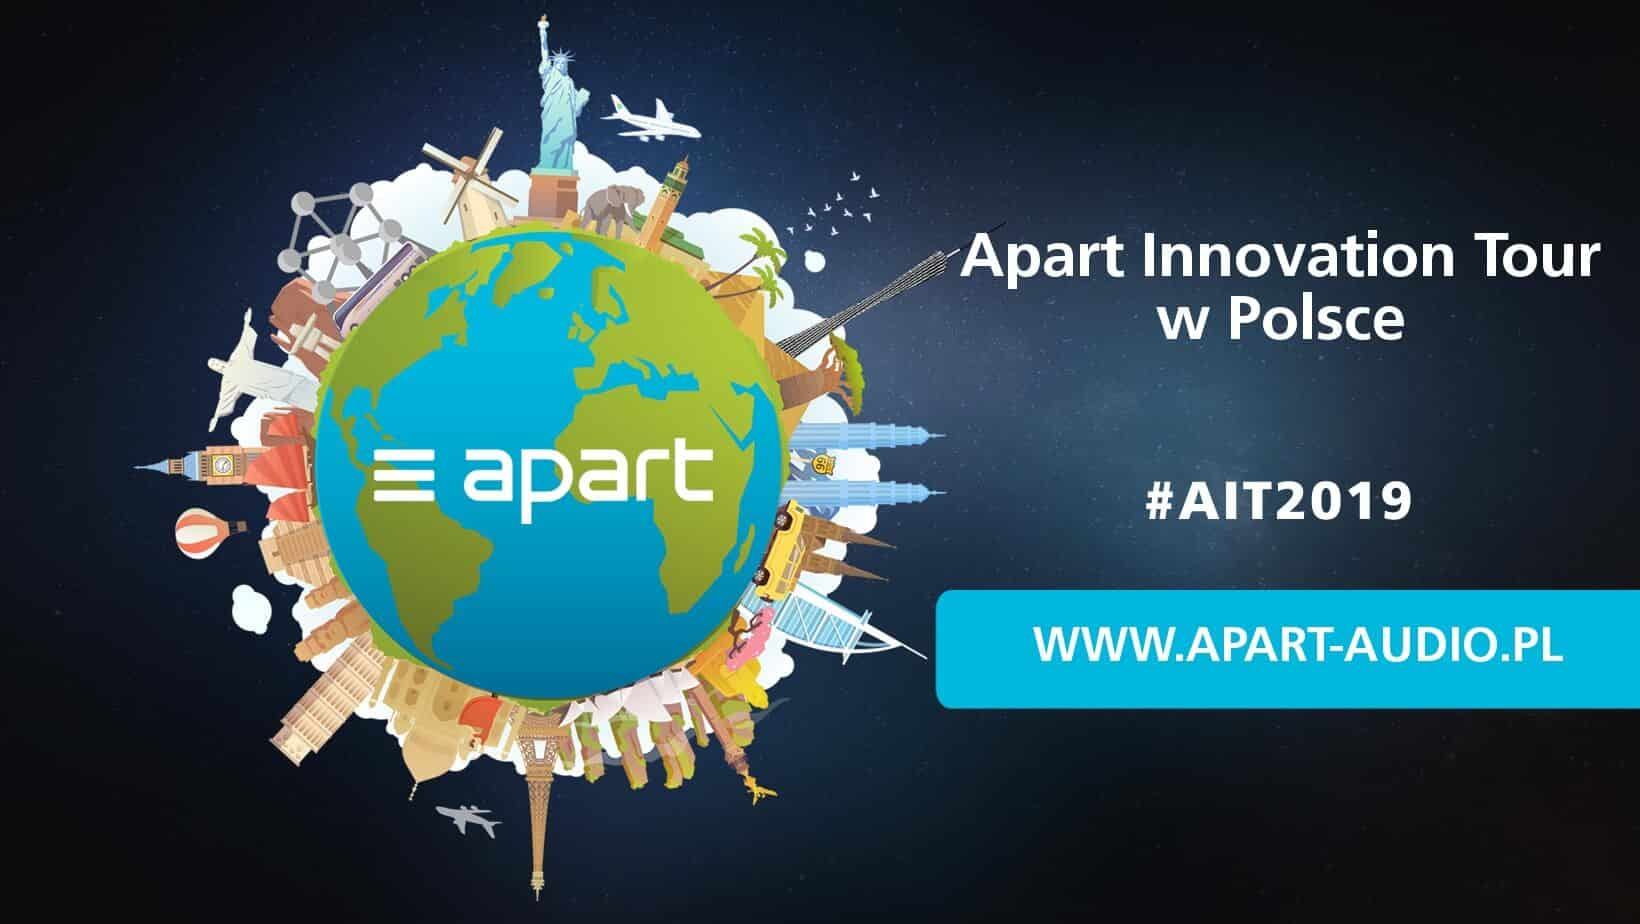 Apart Innovation Tour 2019 w Polsce